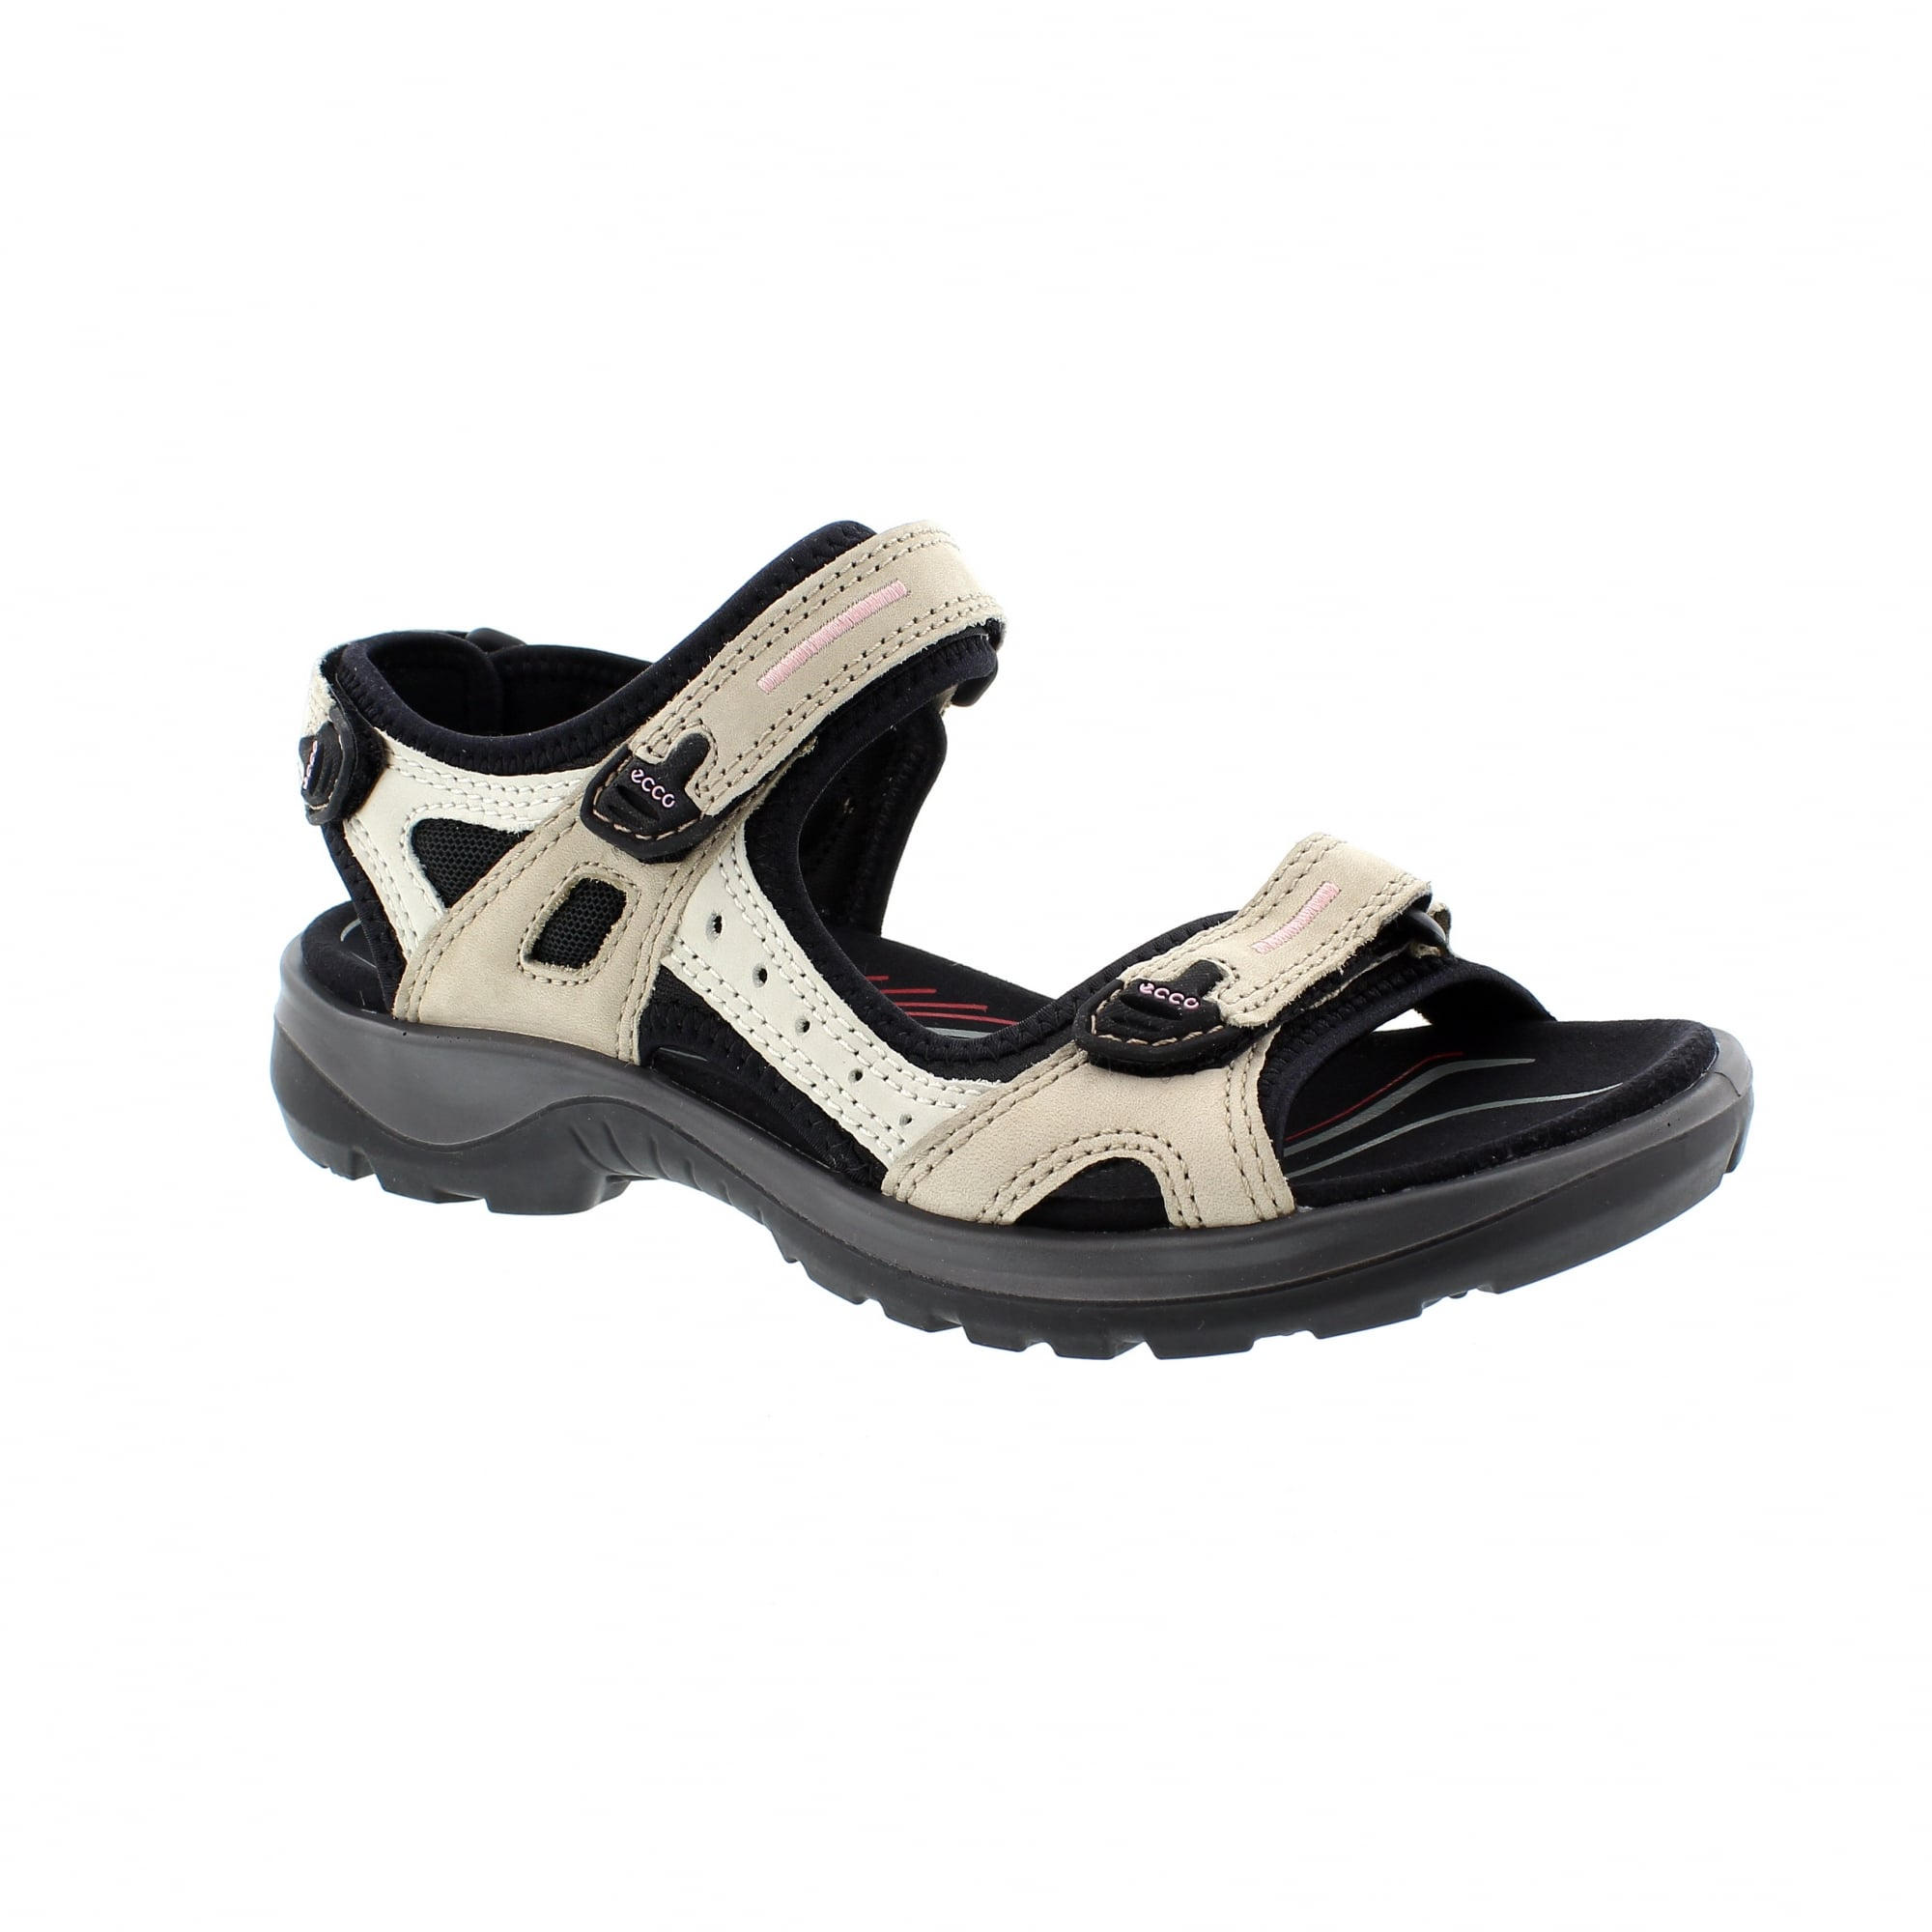 Womens Walking Sandals 069563-54695